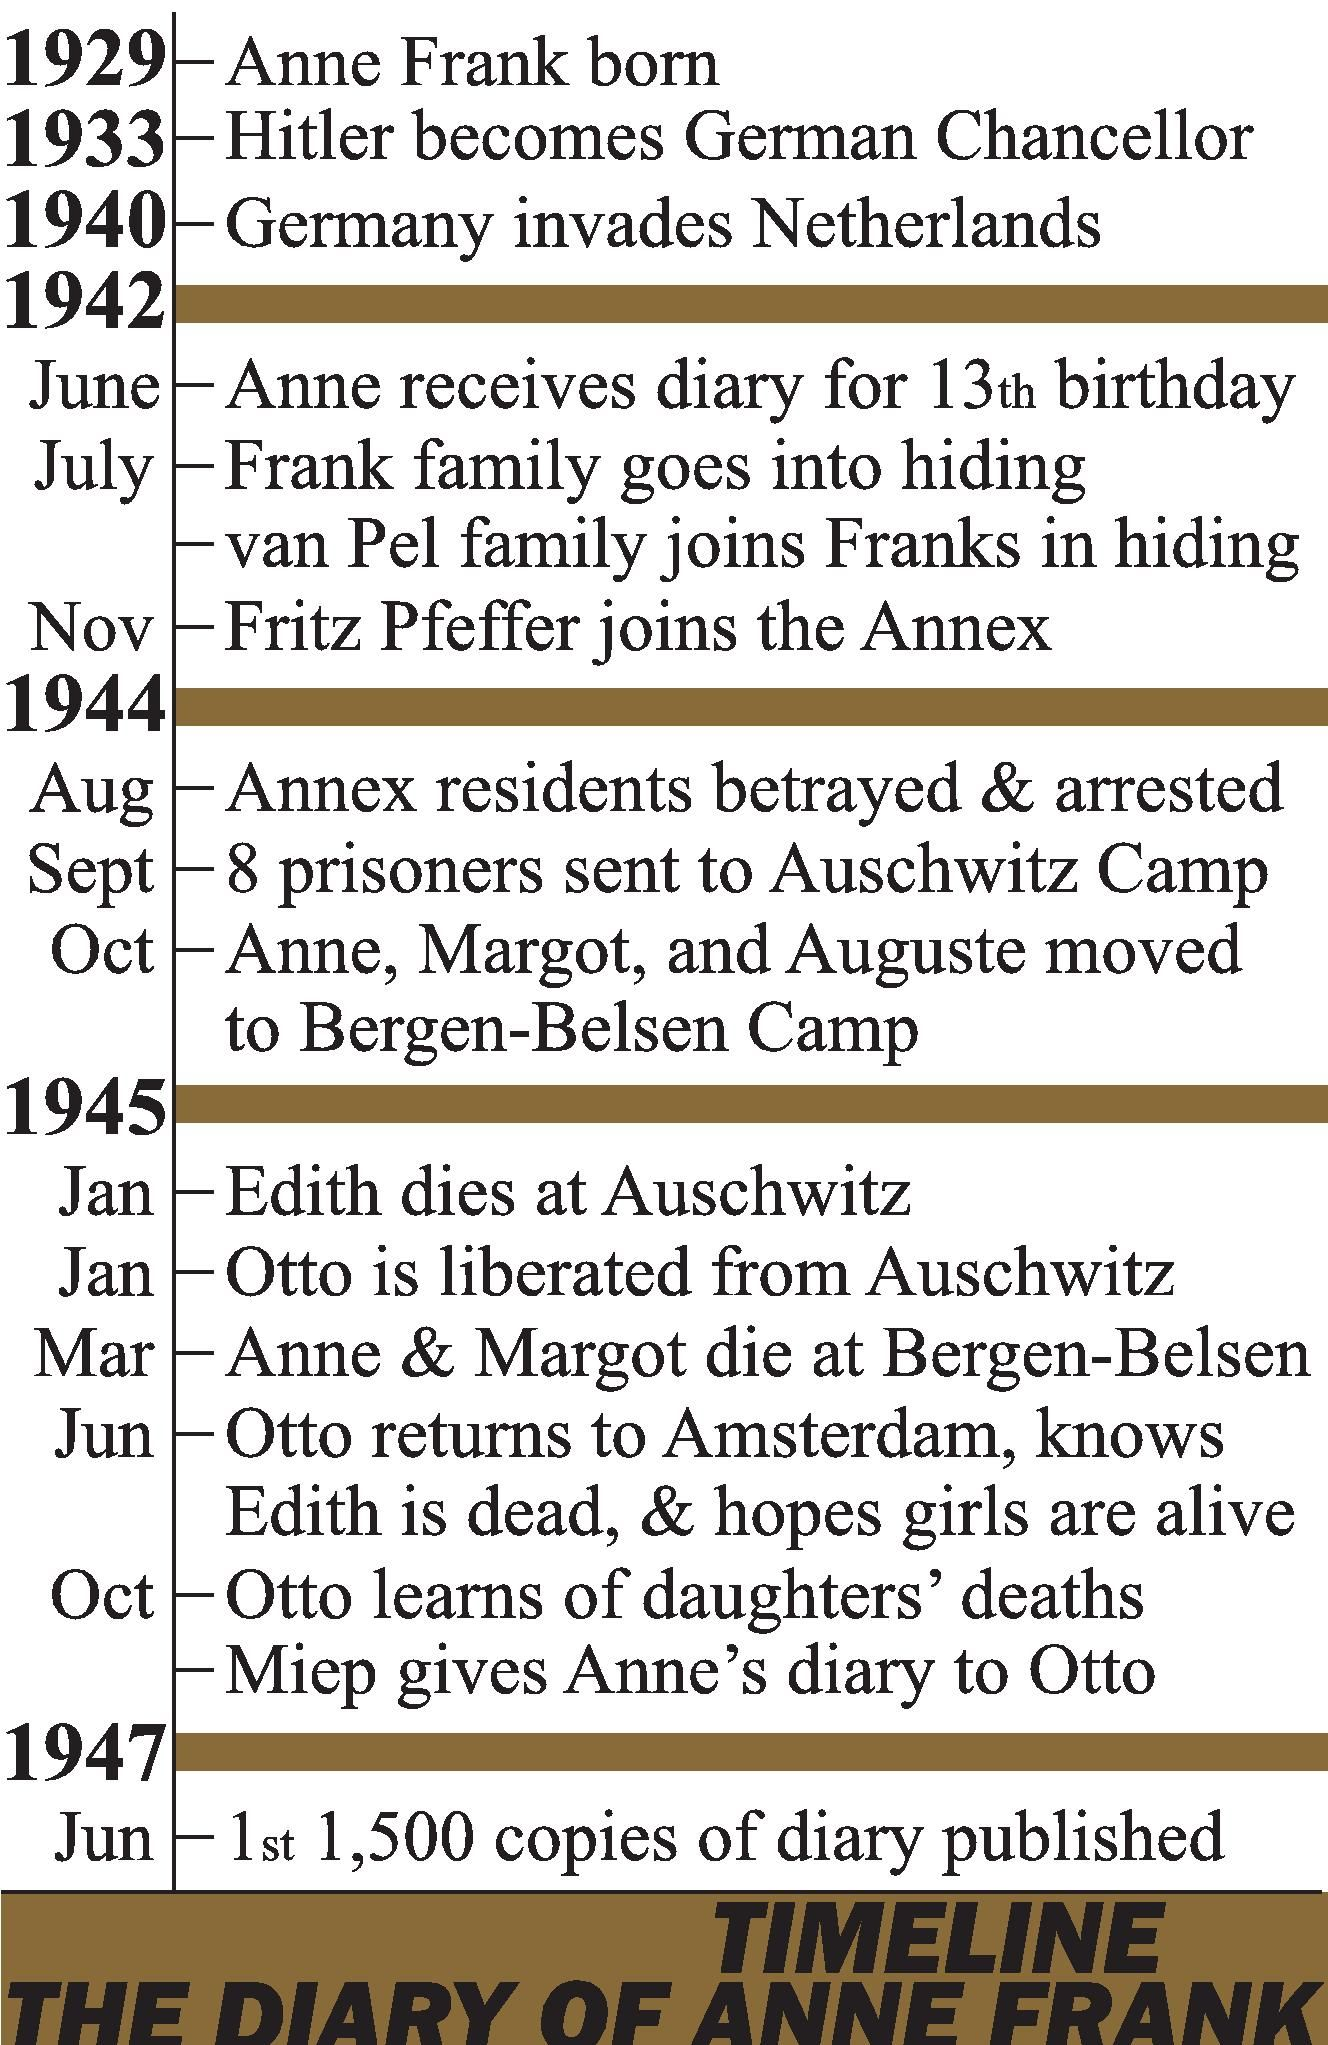 Diary Of Anne Frank Timeline